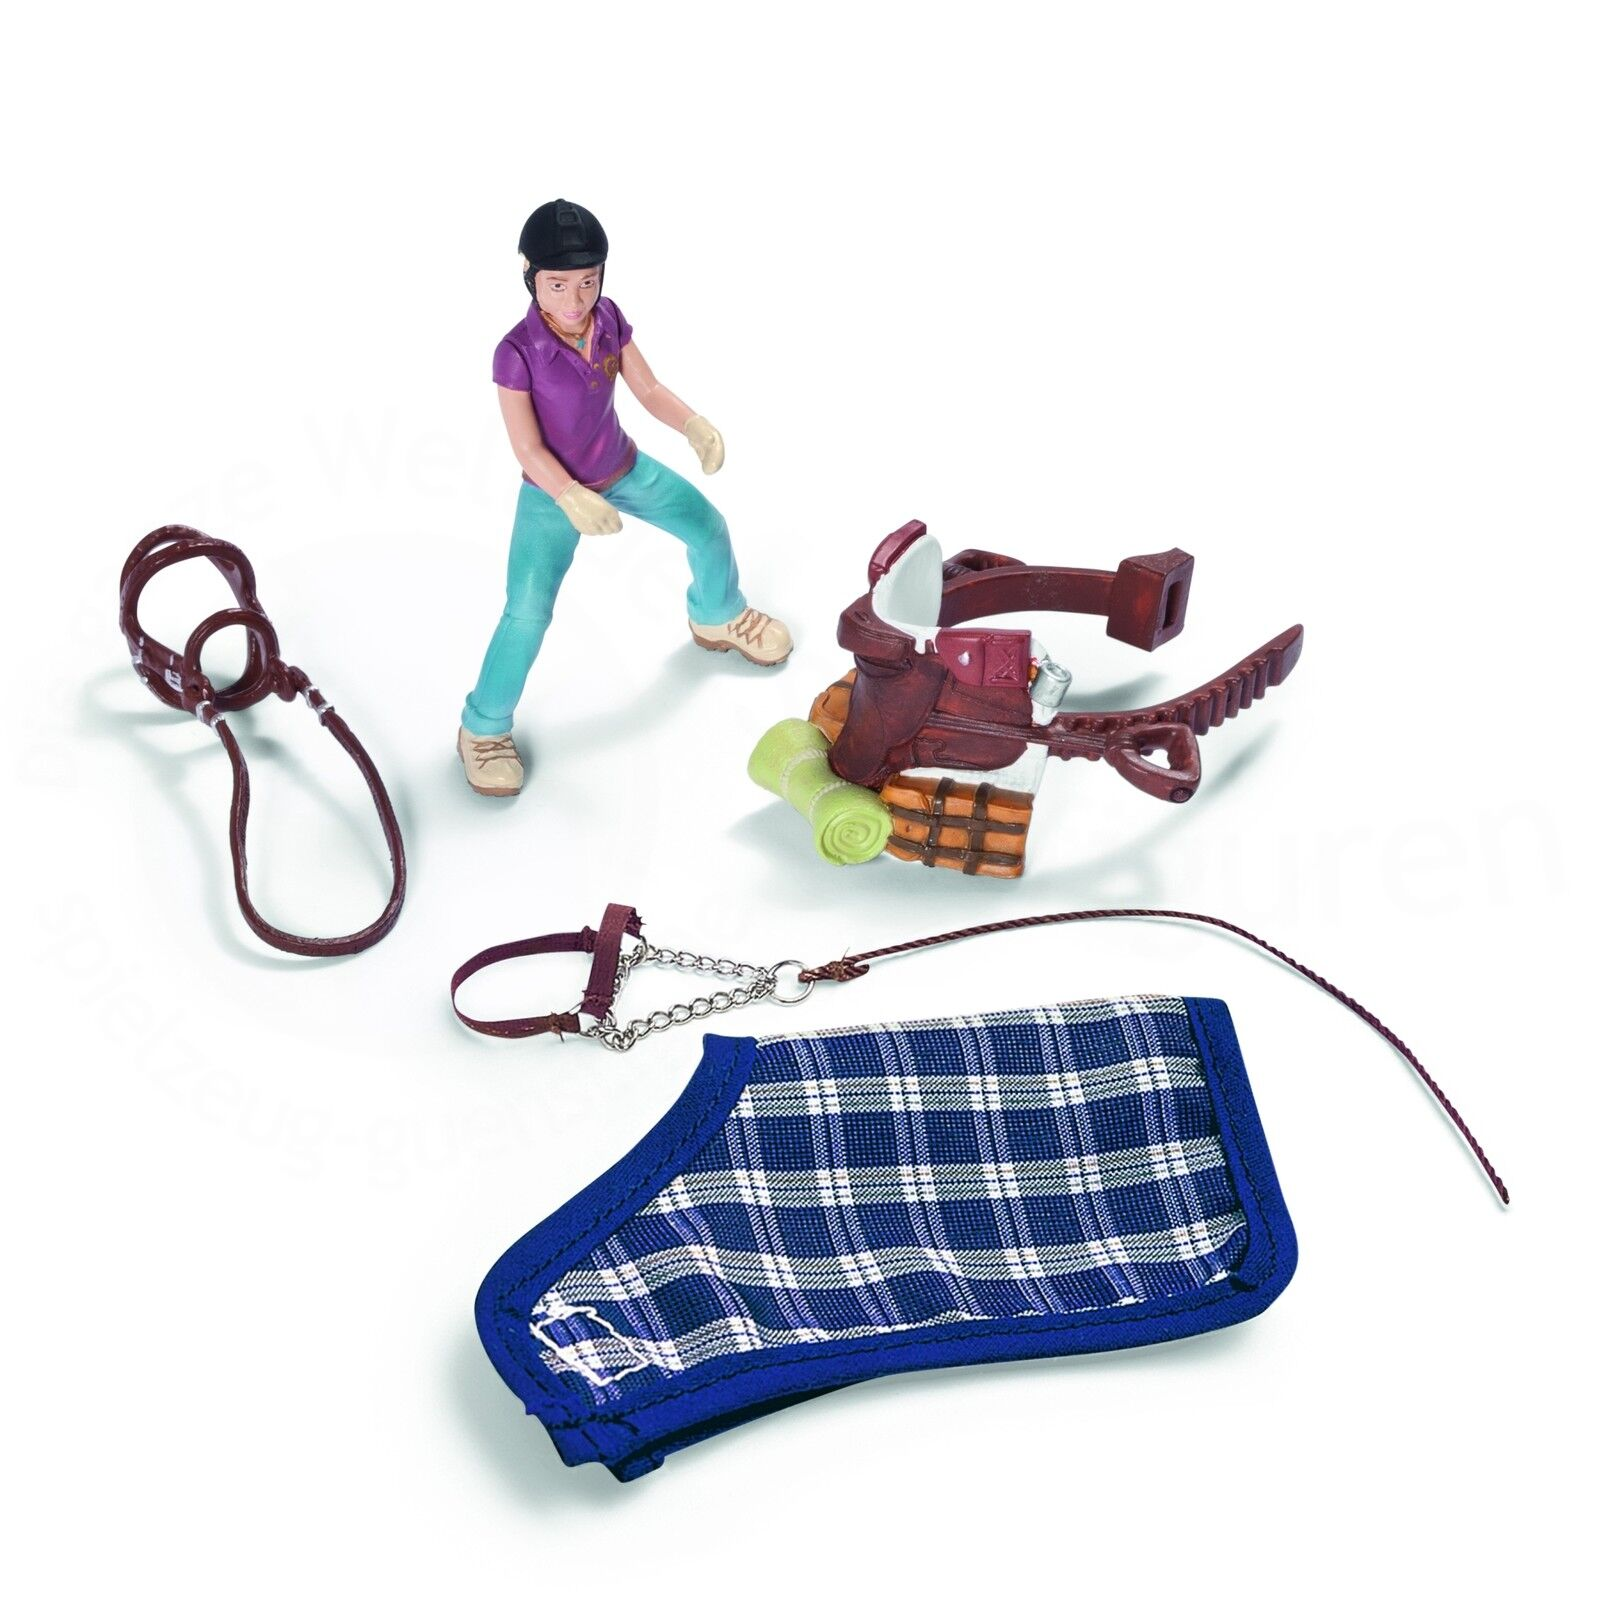 NEW IN BOX SCHLEICH 42093 Pony Riding   Camping Accessories Set - RETIRED